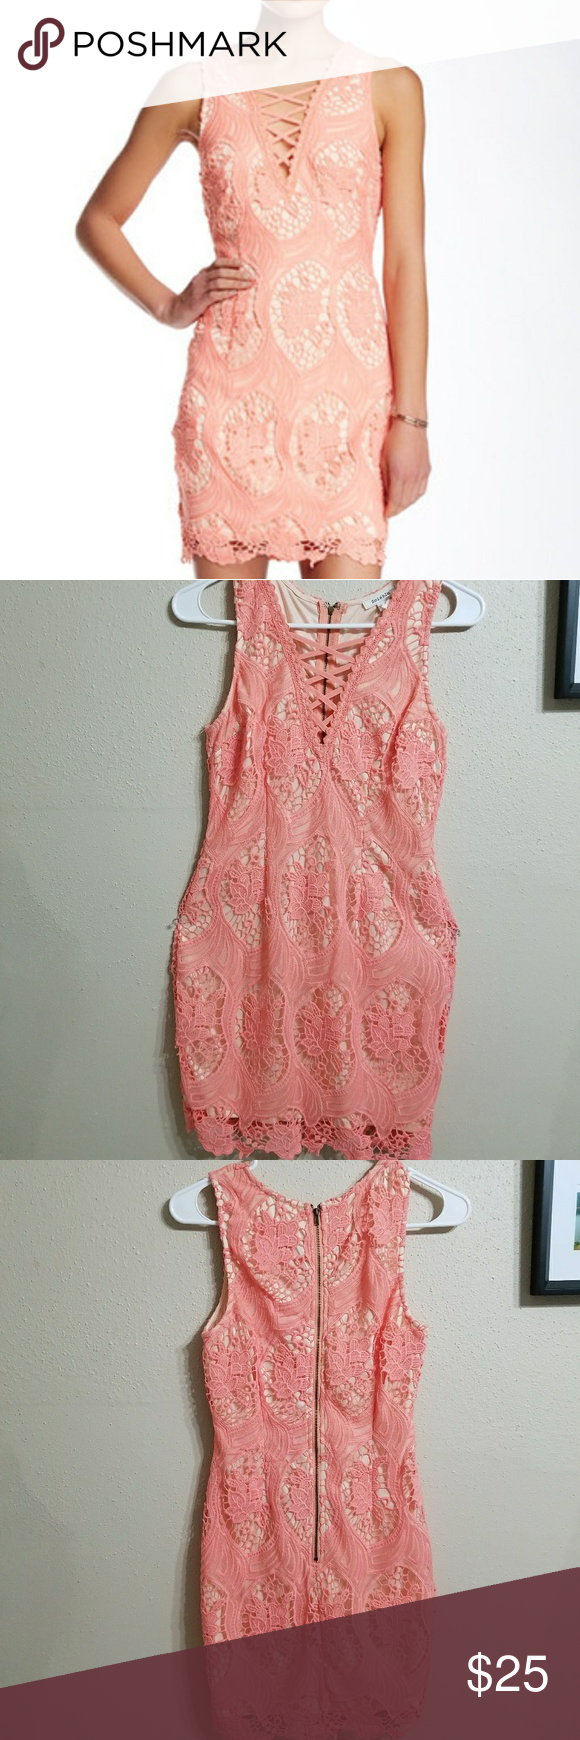 Nordstrom Soièblu Pink Lace Dress